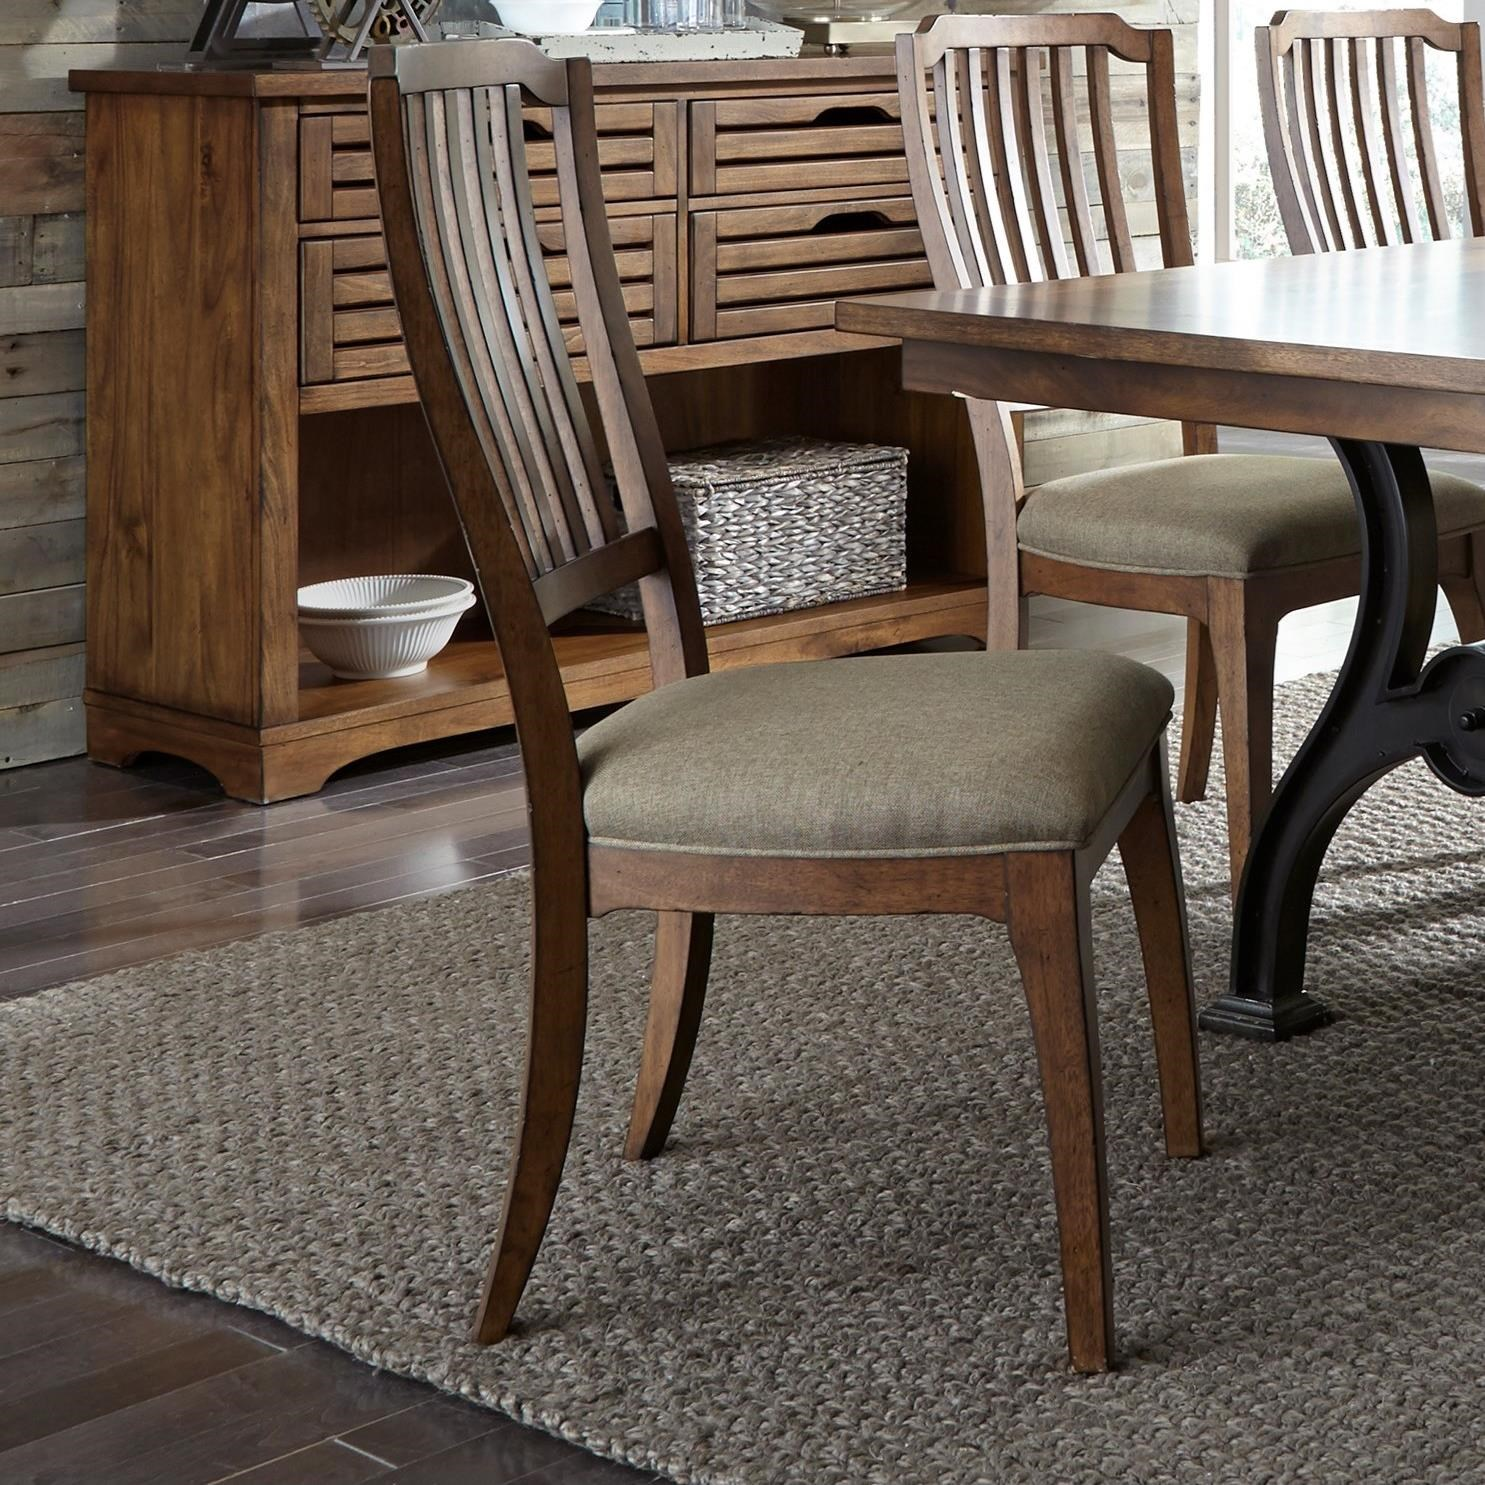 liberty dining chairs how to put chair rail molding furniture arlington spindle back side